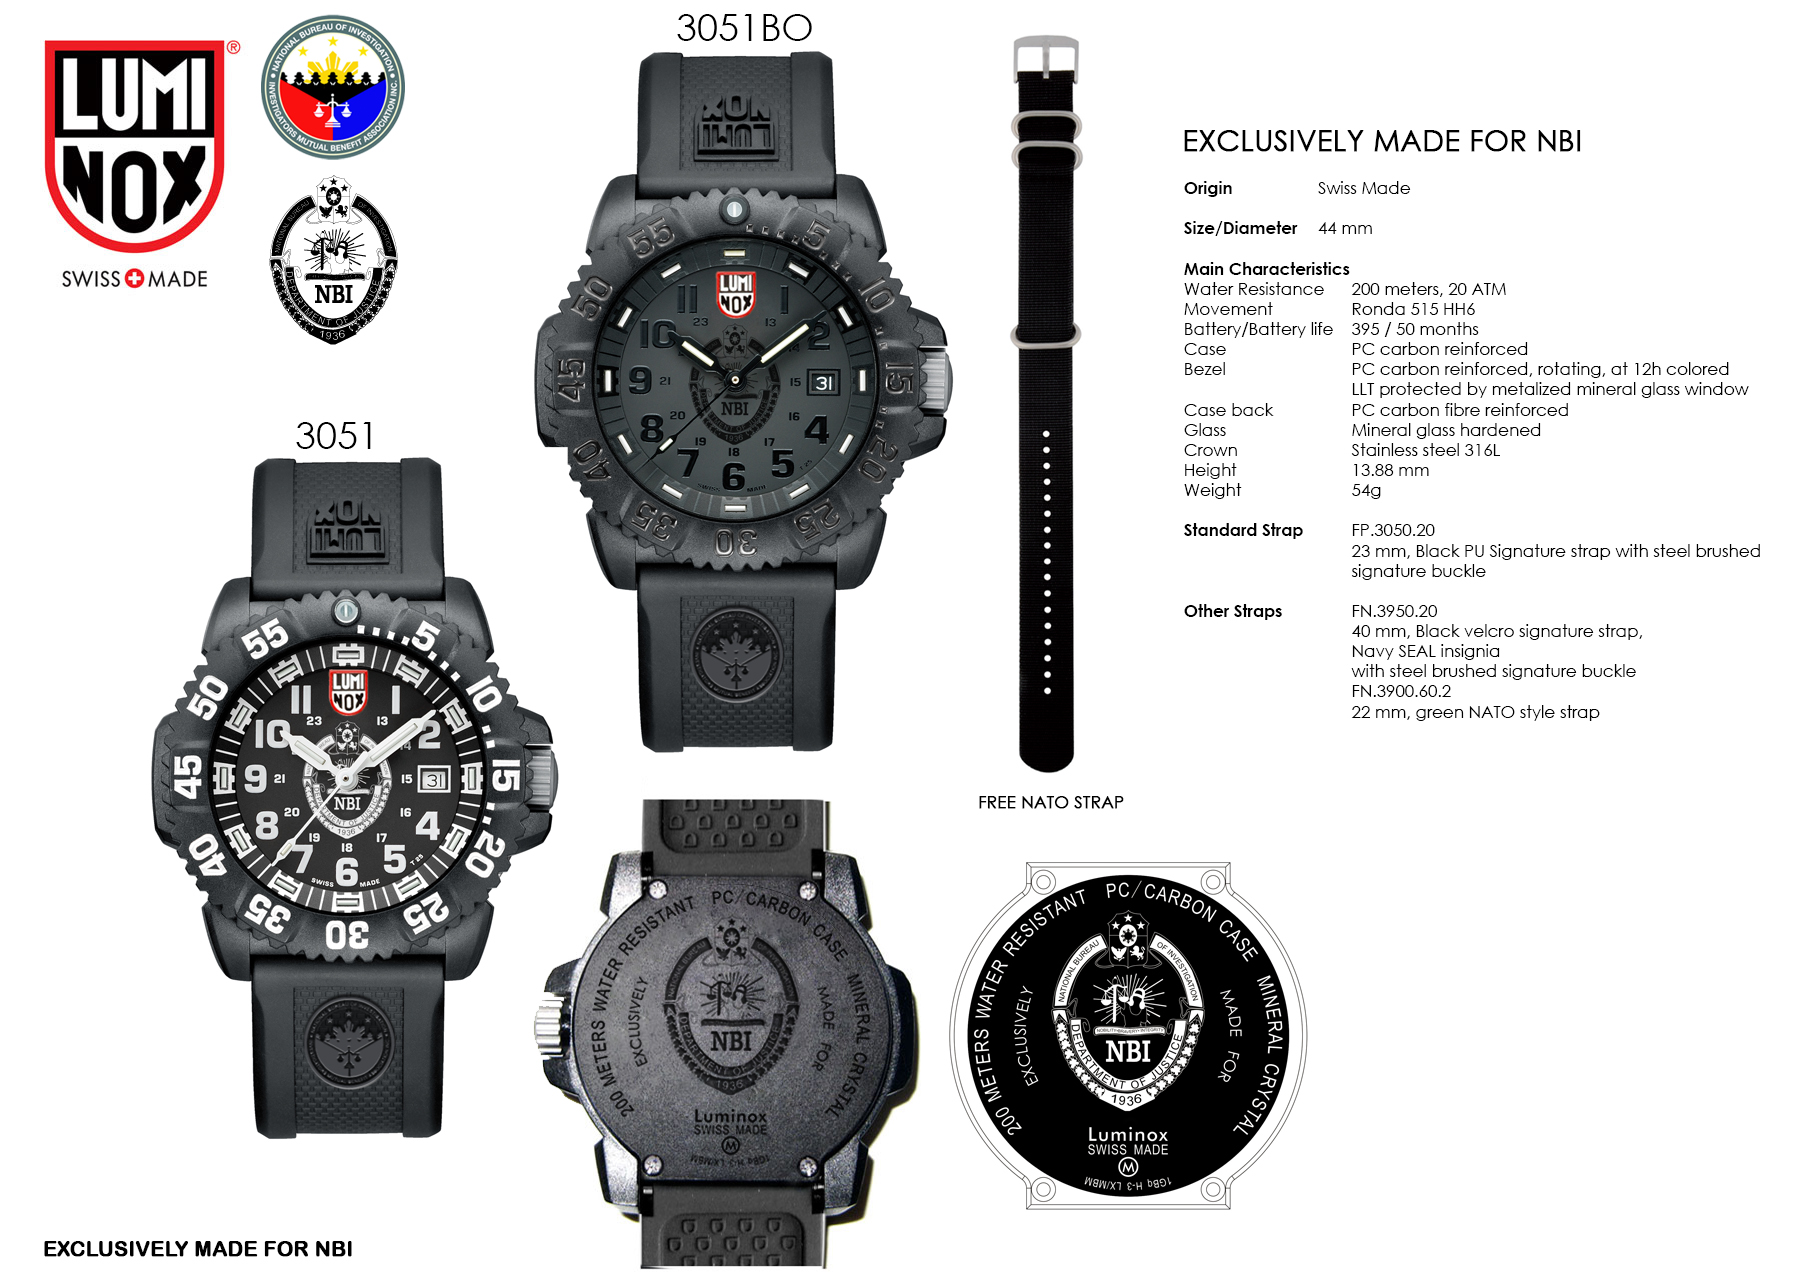 Limited edition NBI wristwatch by Luminox exclusively at Multiply.com